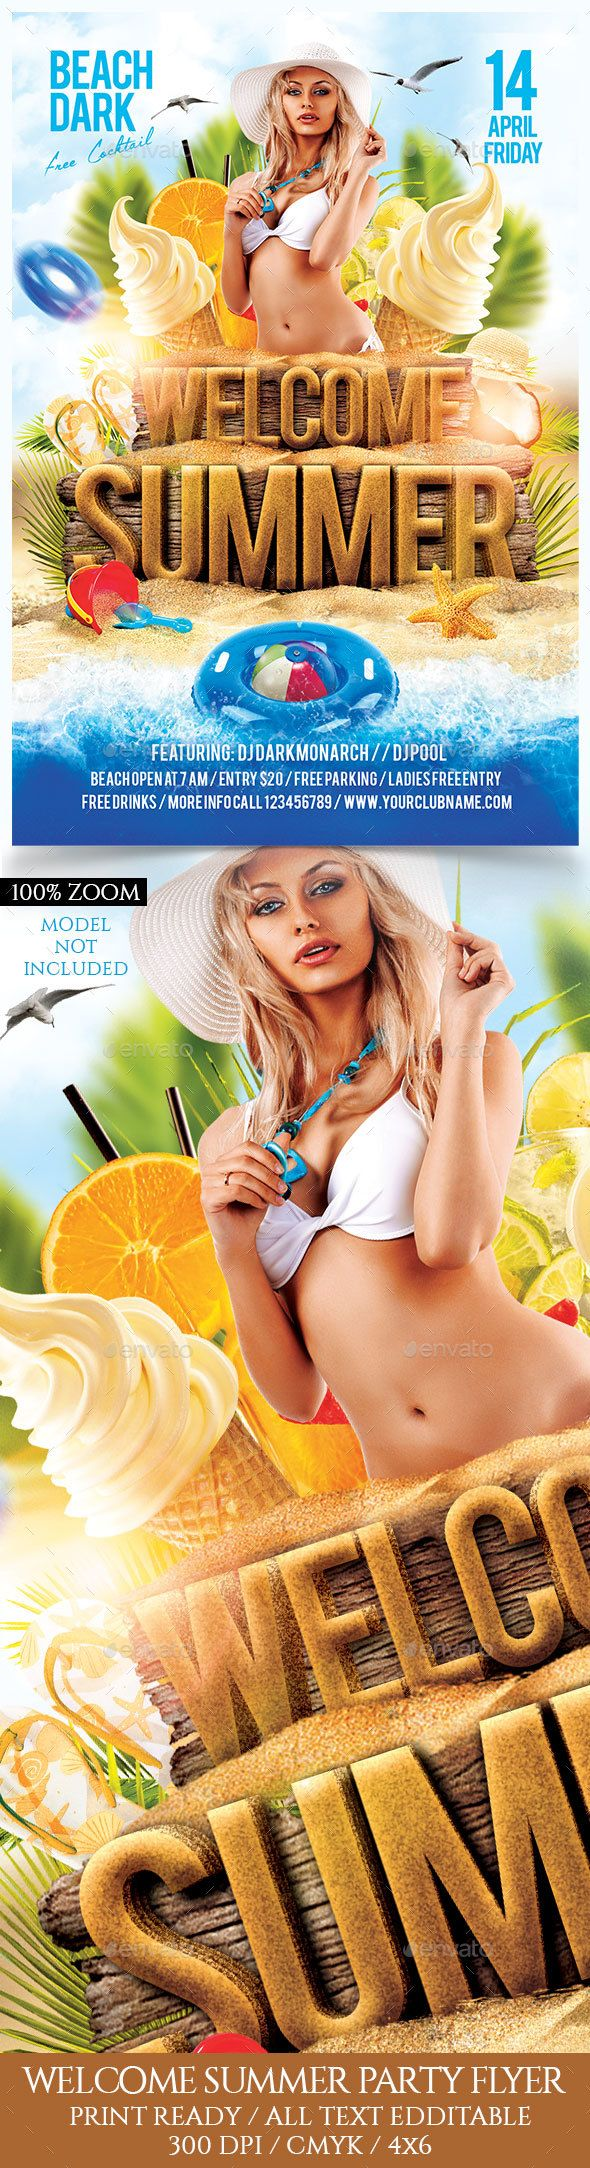 Welcome Summer Party Flyer Template PSD. Download here: http://graphicriver.net/item/welcome-summer-party-flyer-template/16435421?ref=ksioks